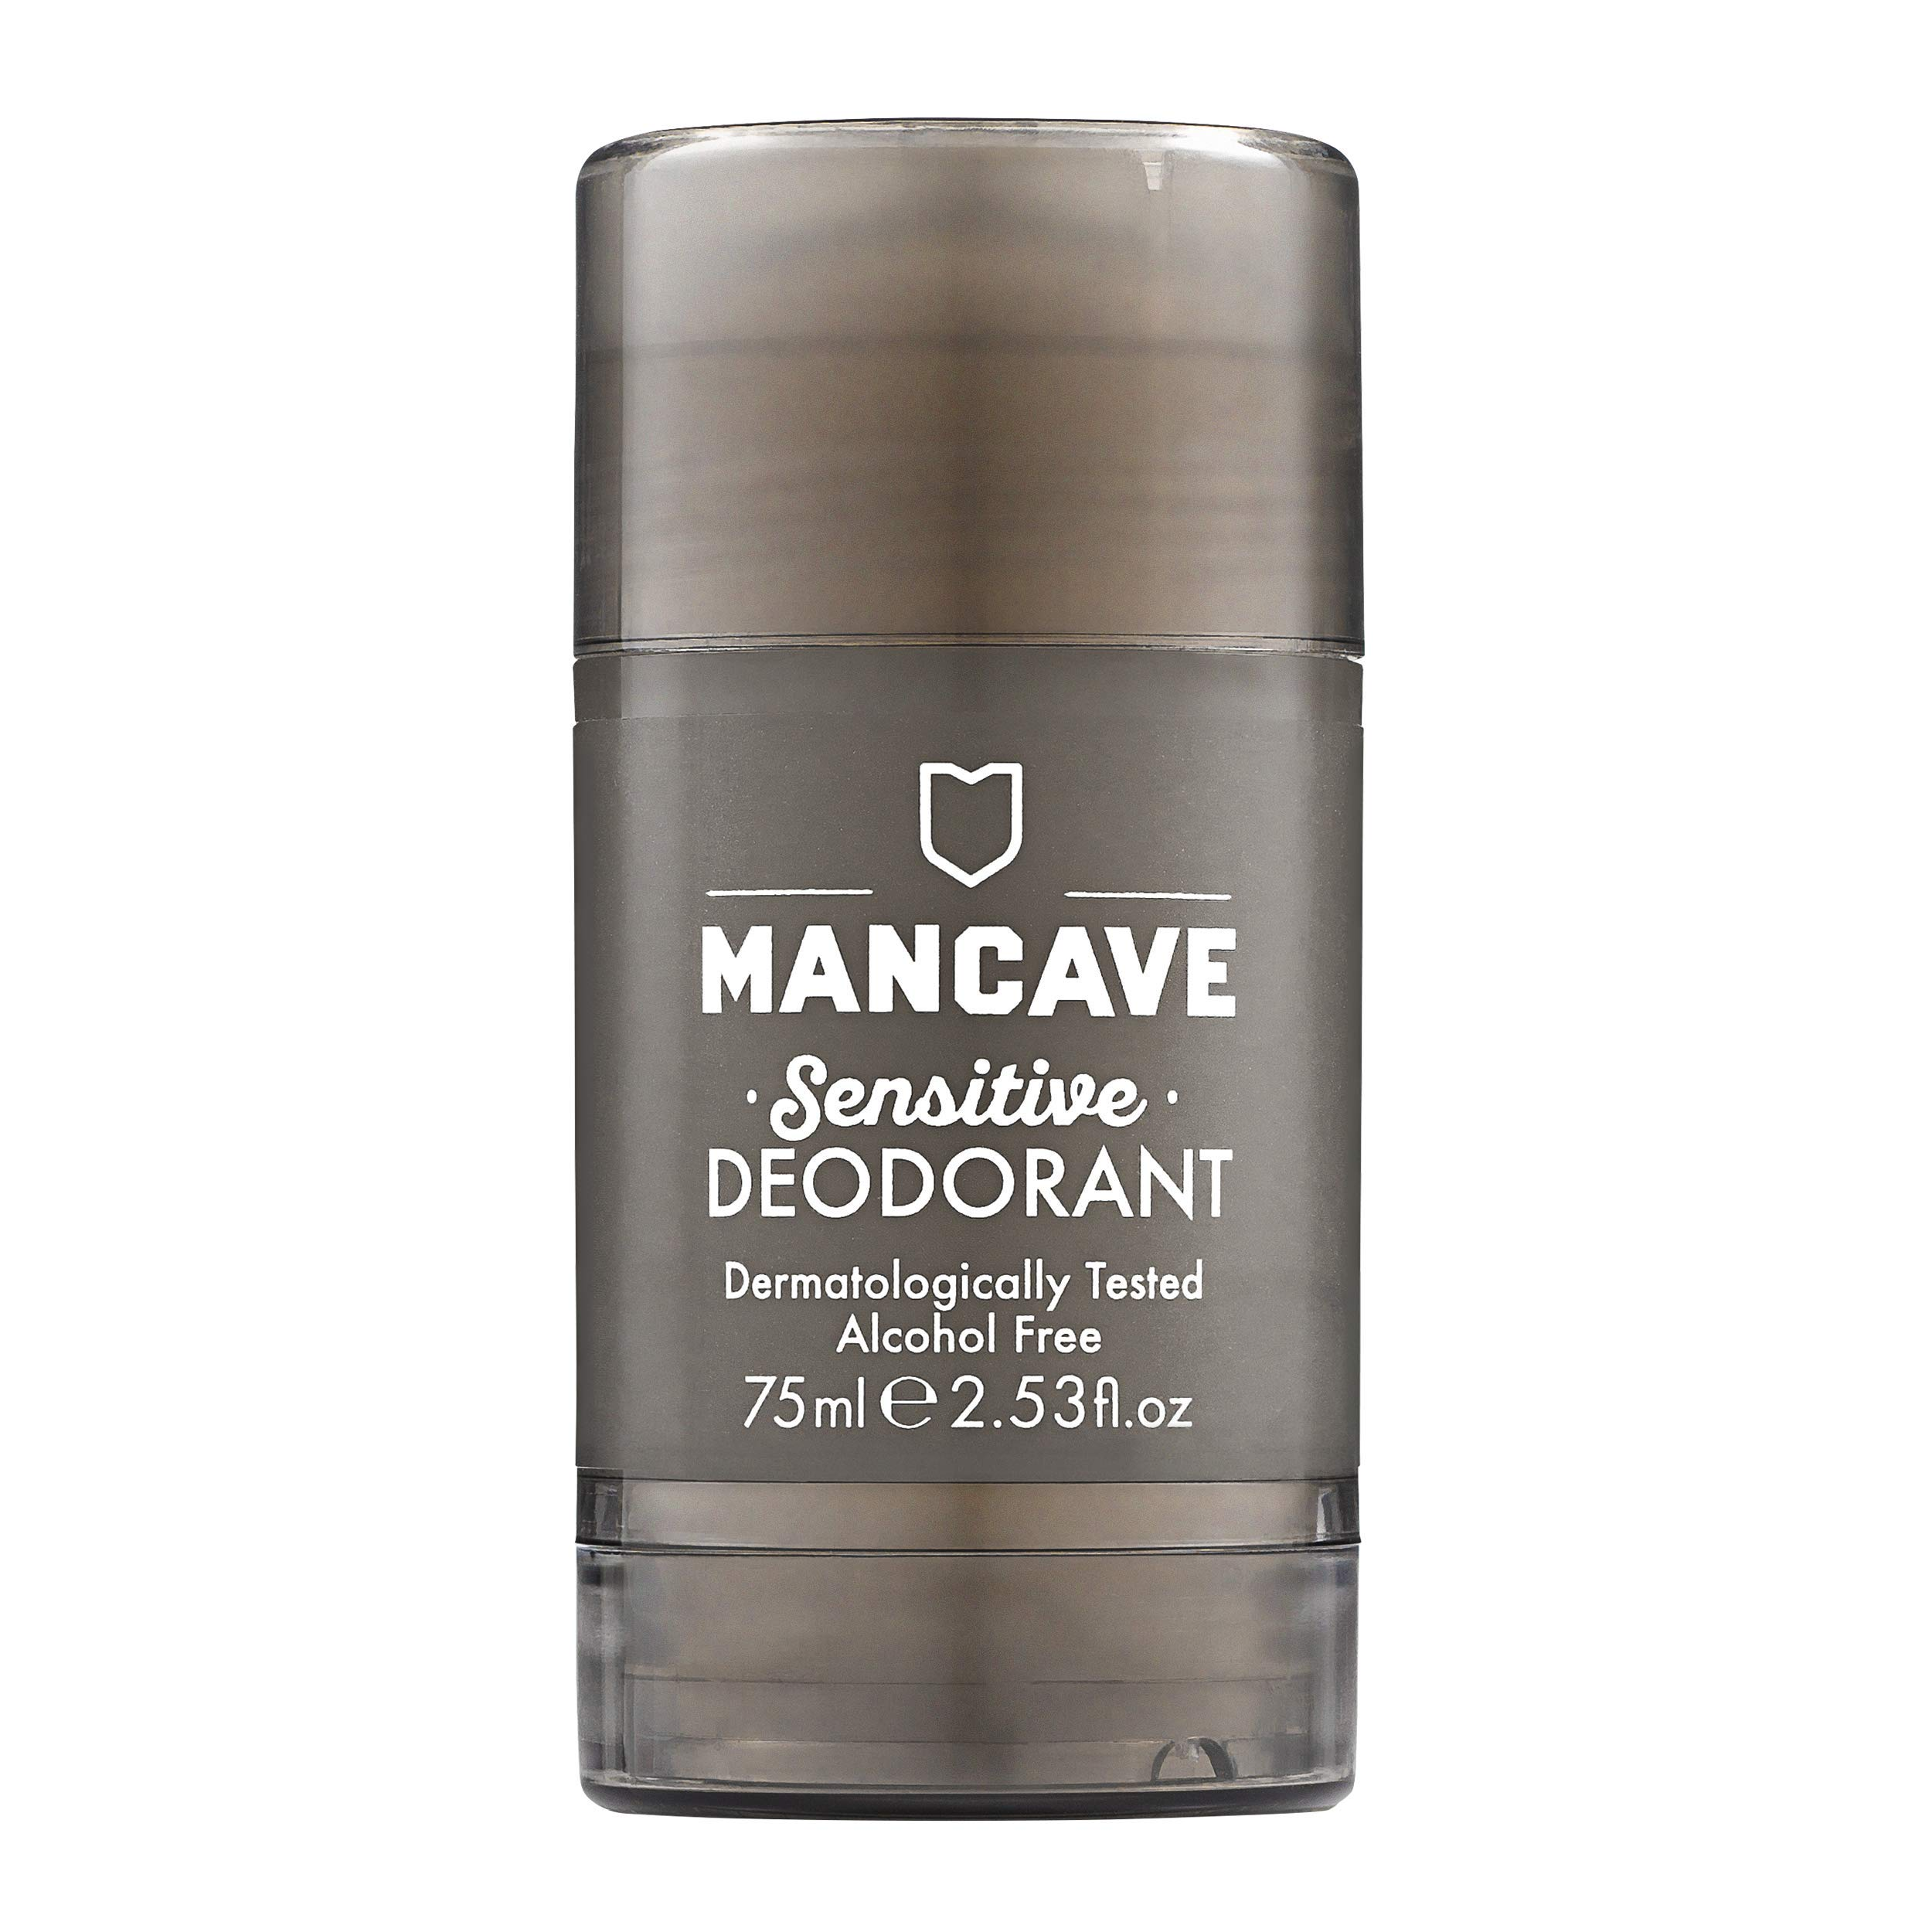 Mancave White Tea Deodorant 75ml – Aluminium & Alcohol Free, Suitable for Sensitive Skin